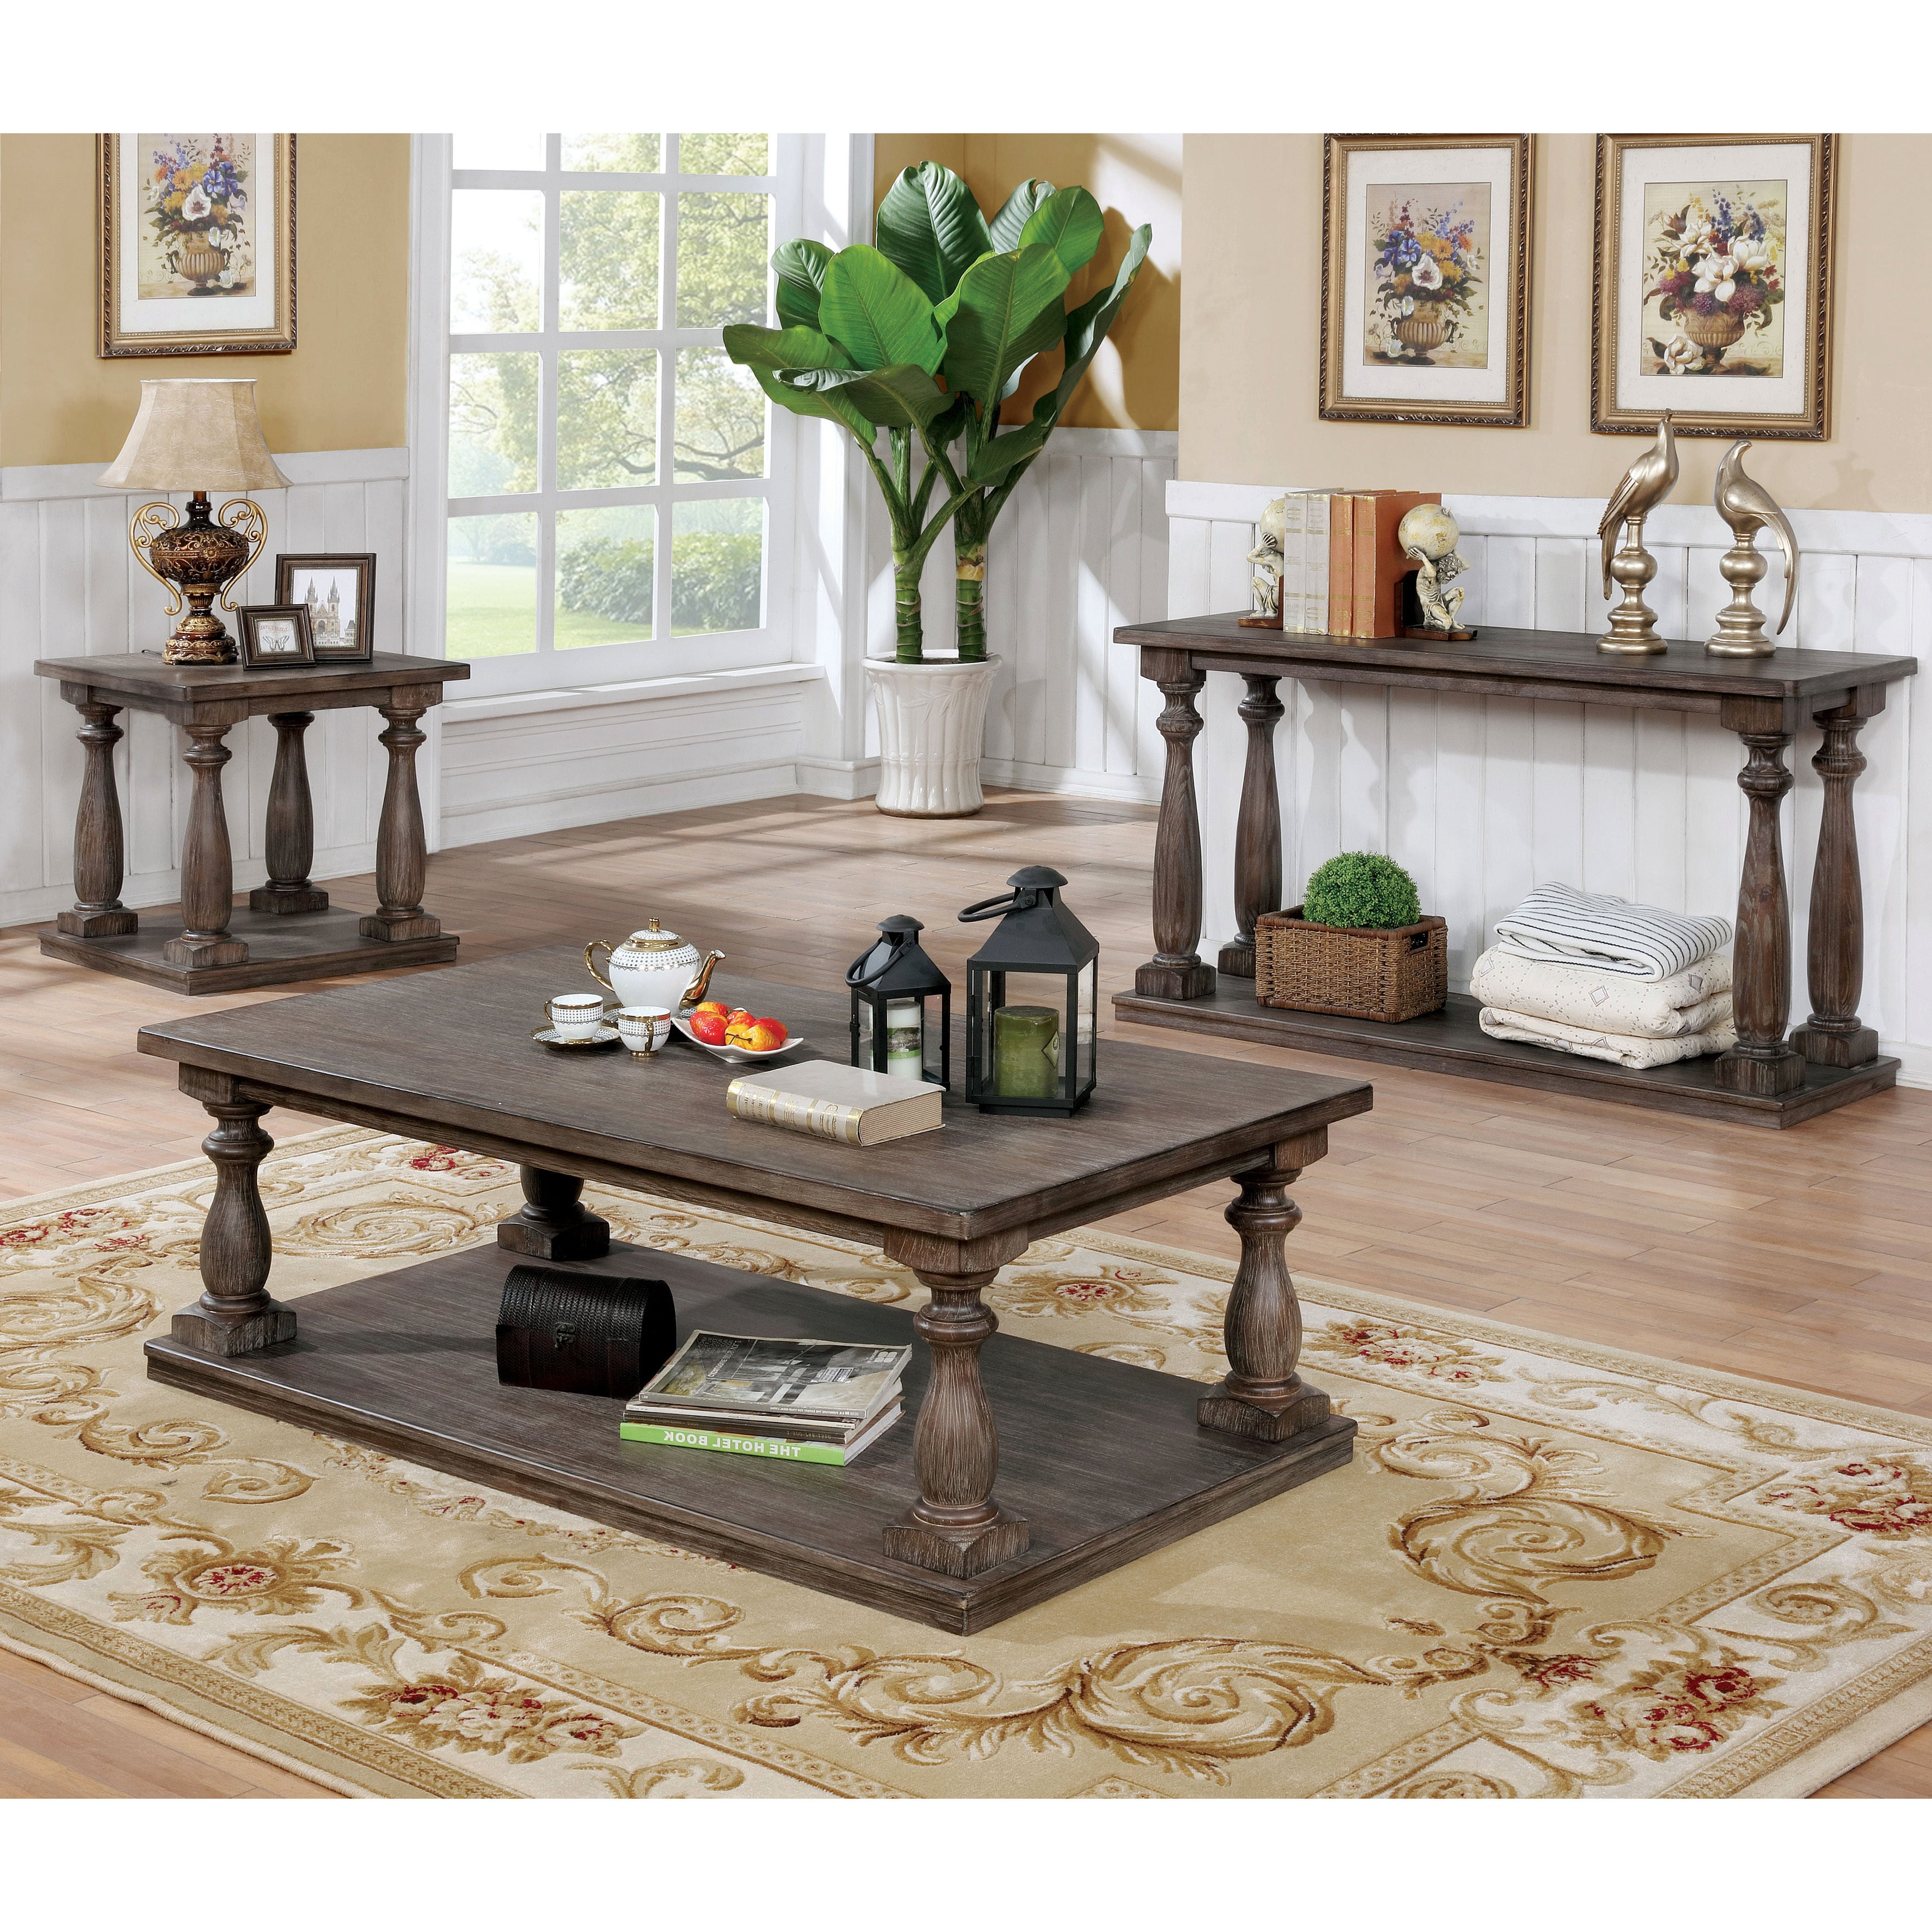 Most Recent Jessa Rustic Country 54 Inch Coffee Tables Regarding Jessa Rustic Country 54 Inch Coffee Tablefoa (View 3 of 20)